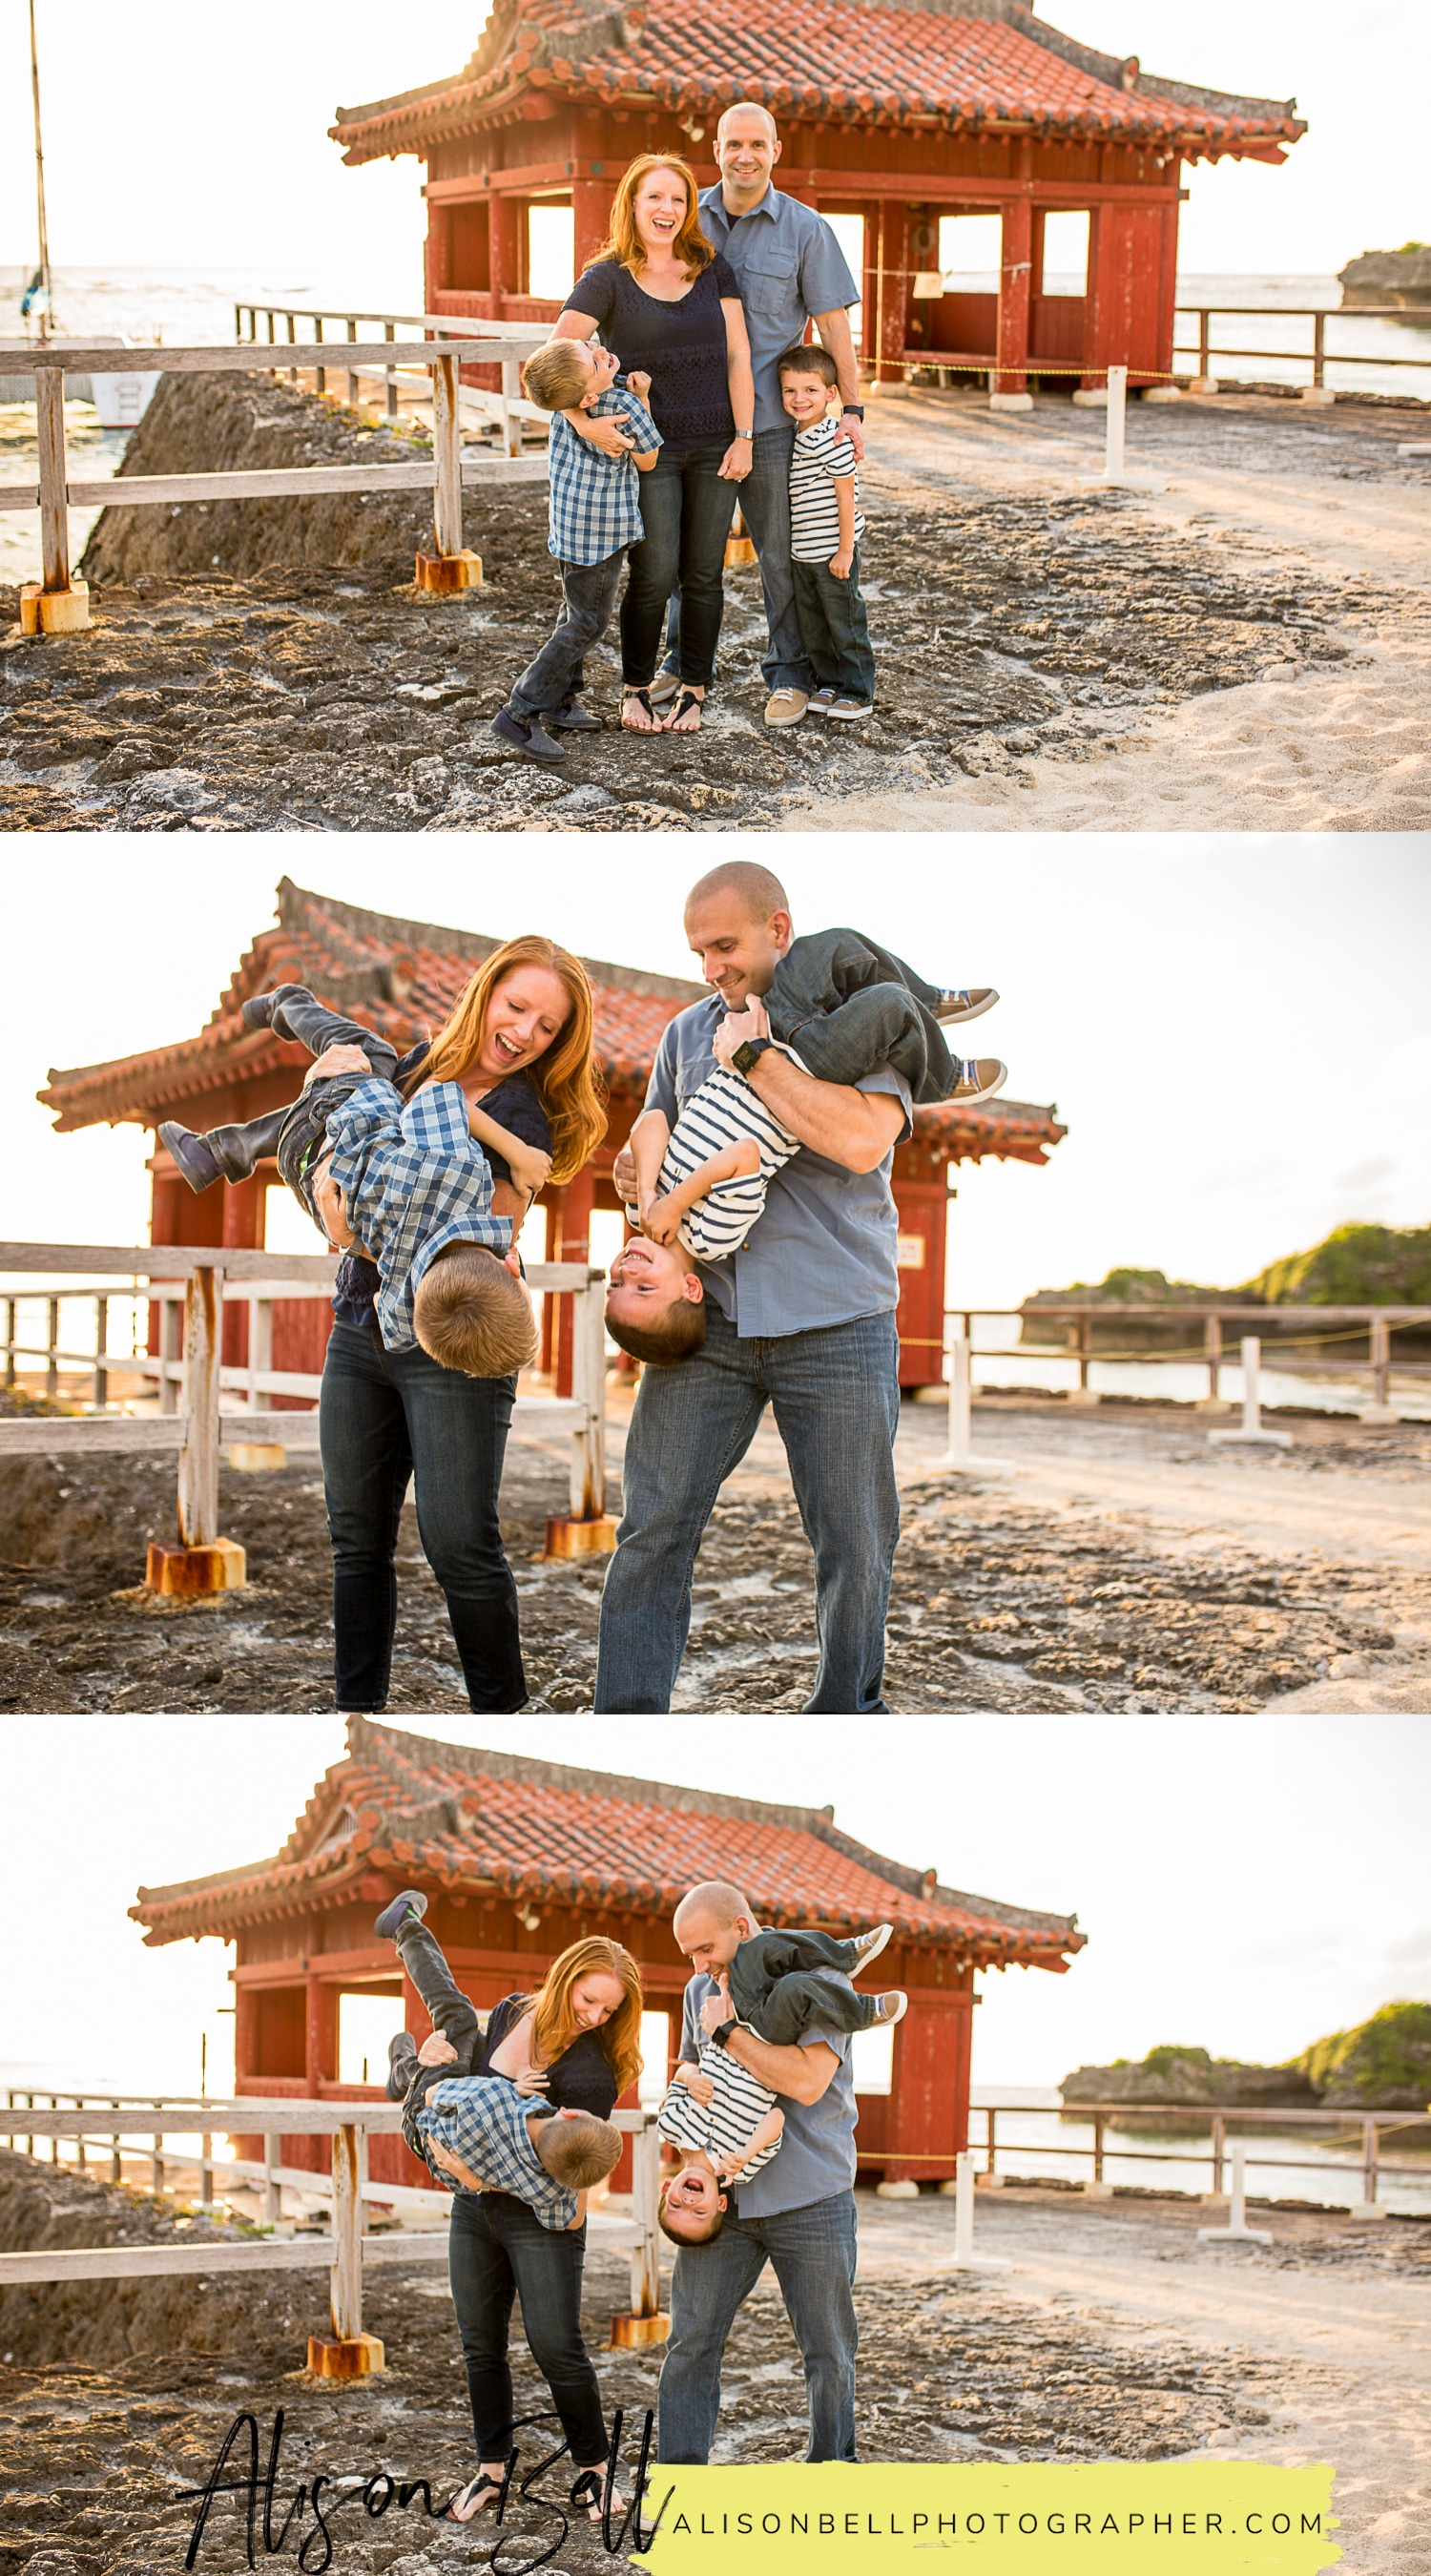 Family beach and torii photo session at the Gala in Okinawa, Japan by Alison Bell Photographer